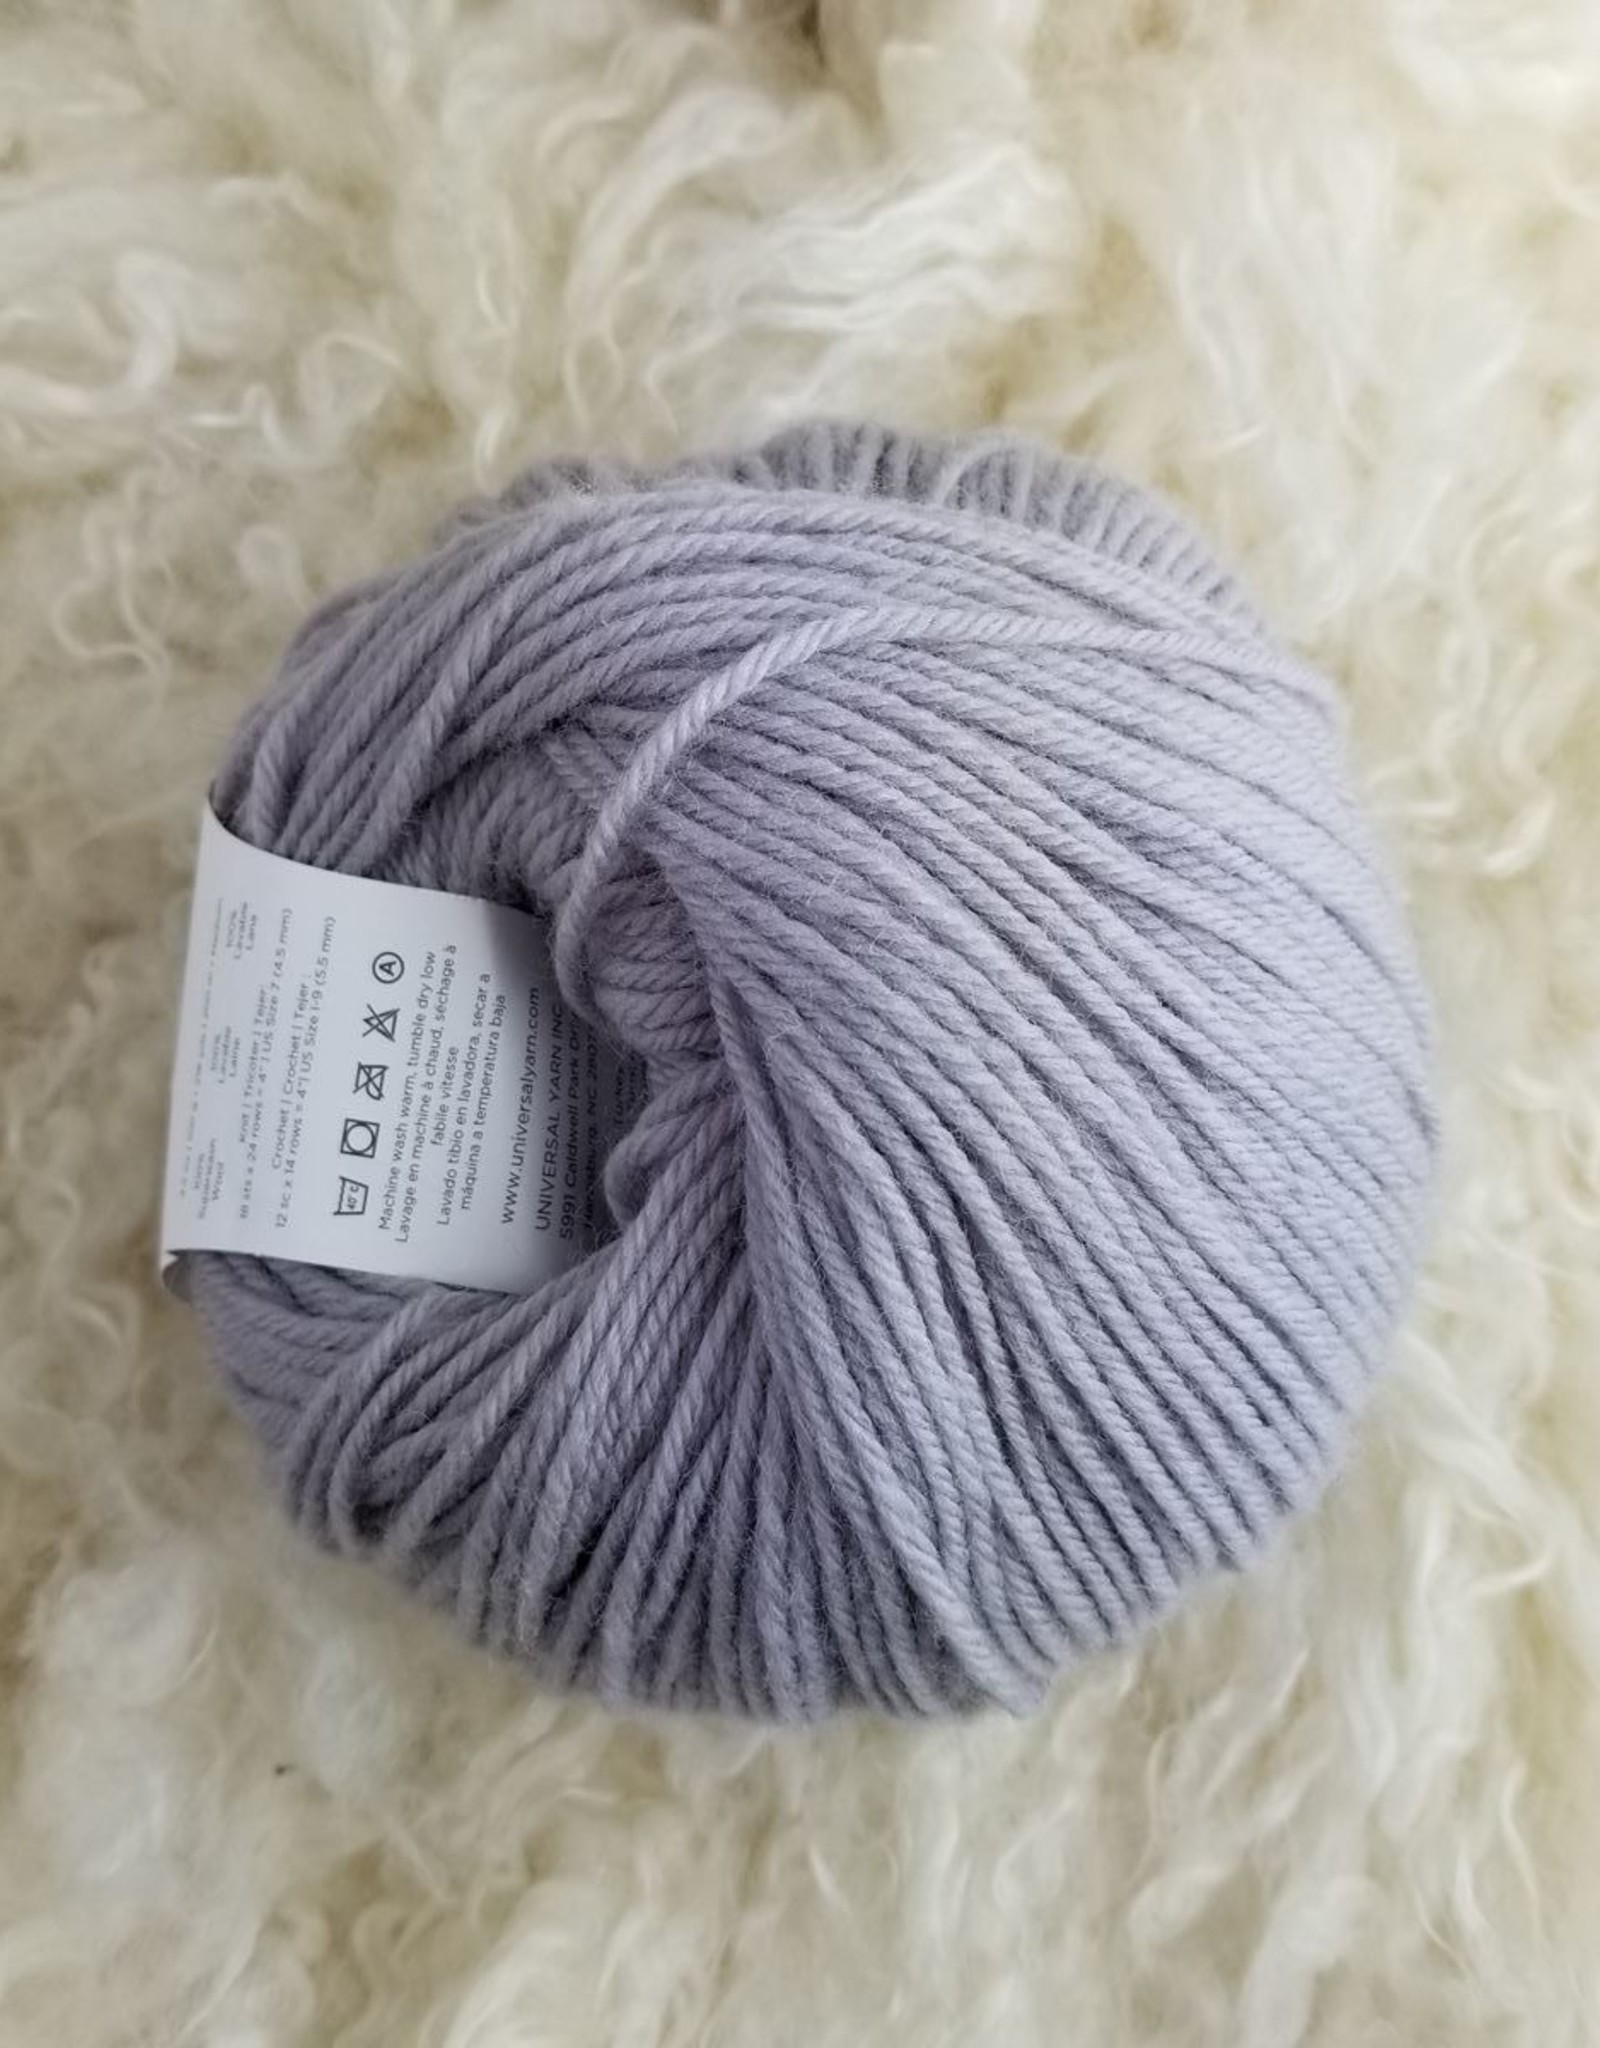 Universal Yarns UY Deluxe Worsted SW 100g 730 steel cut oats